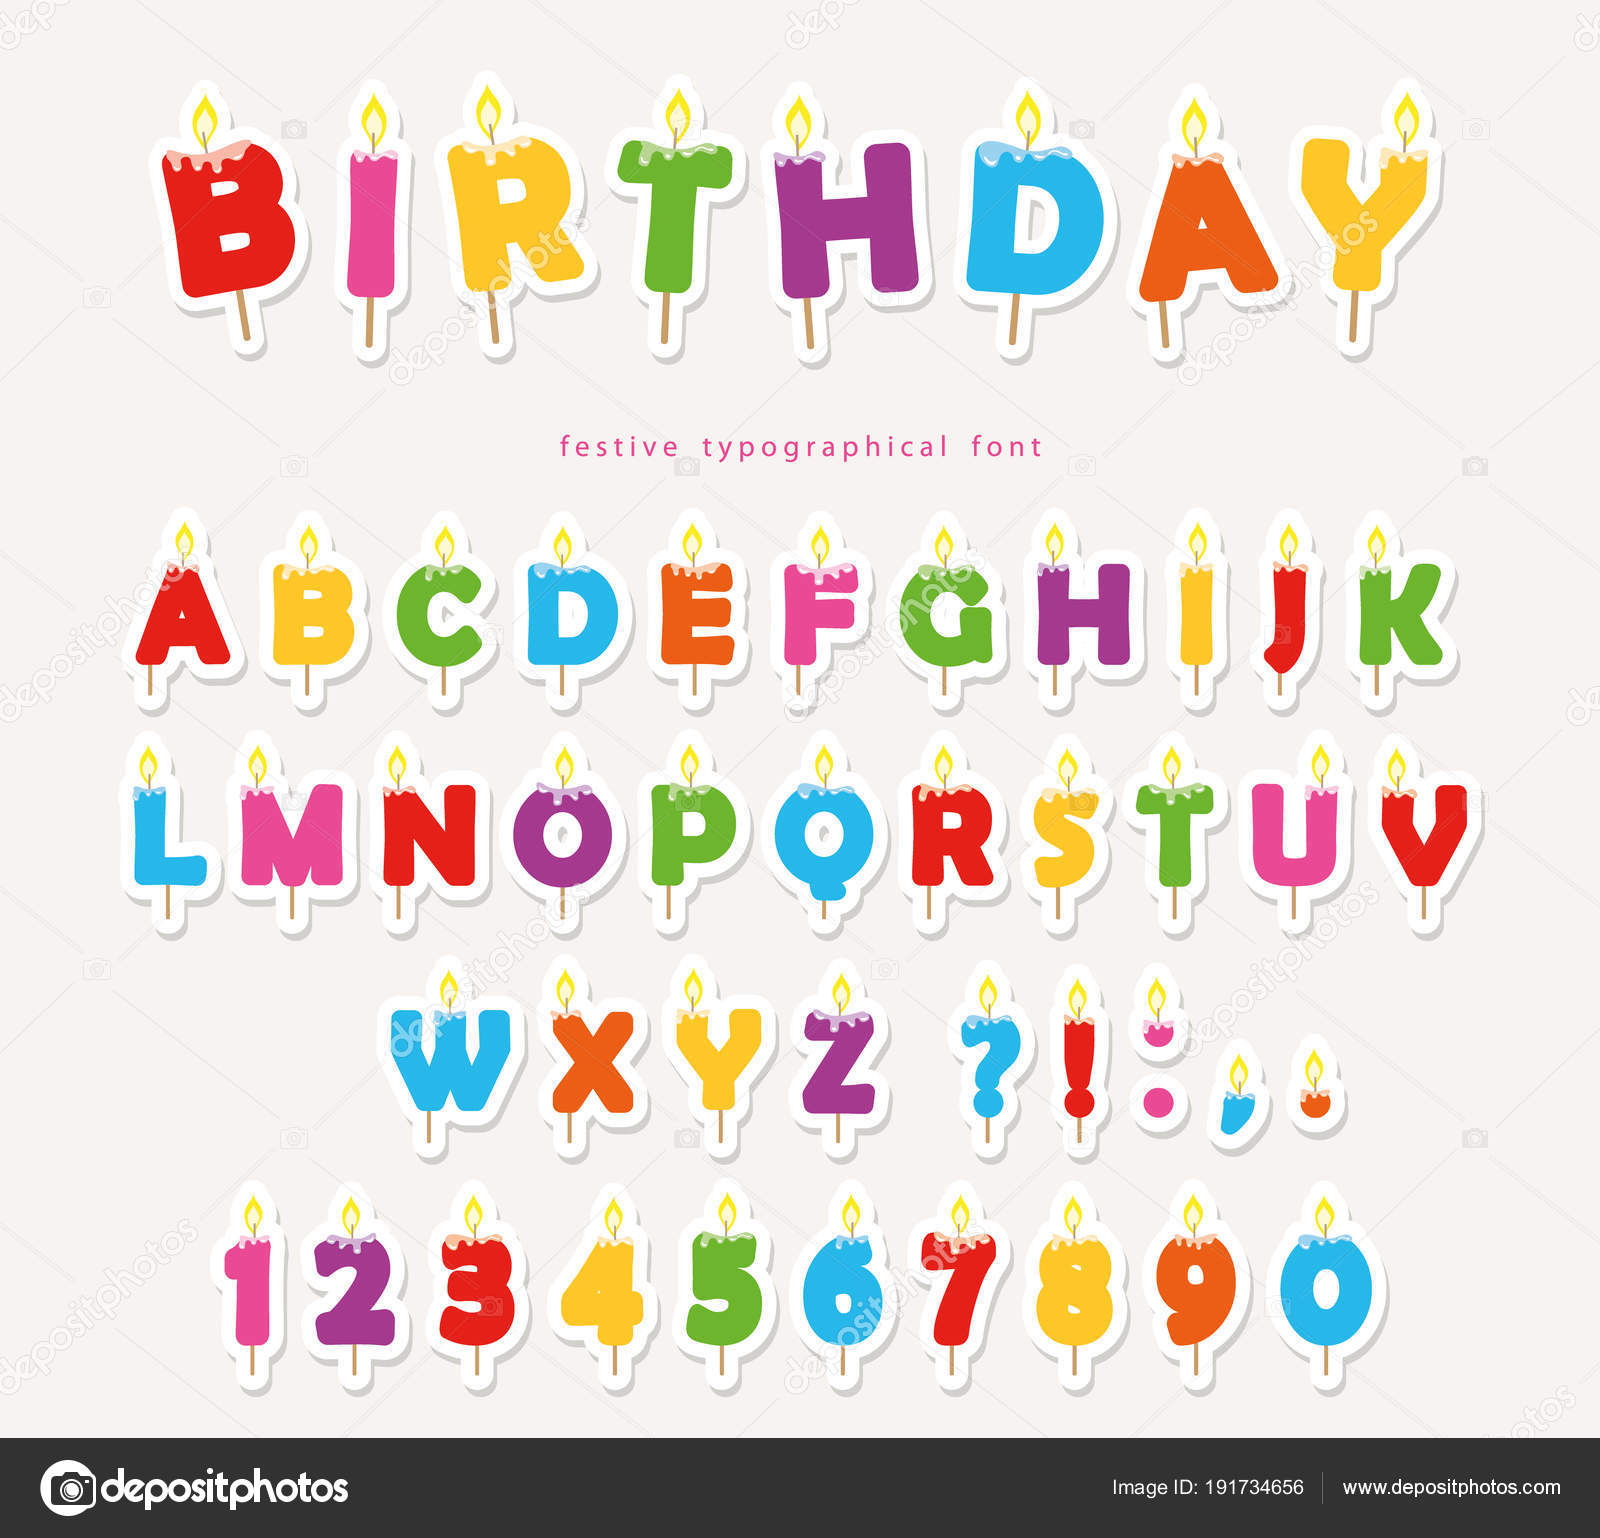 Birthday Candles Colorful Font Design Cutout ABC Letters And Numbers Vector By Cutelittlethings